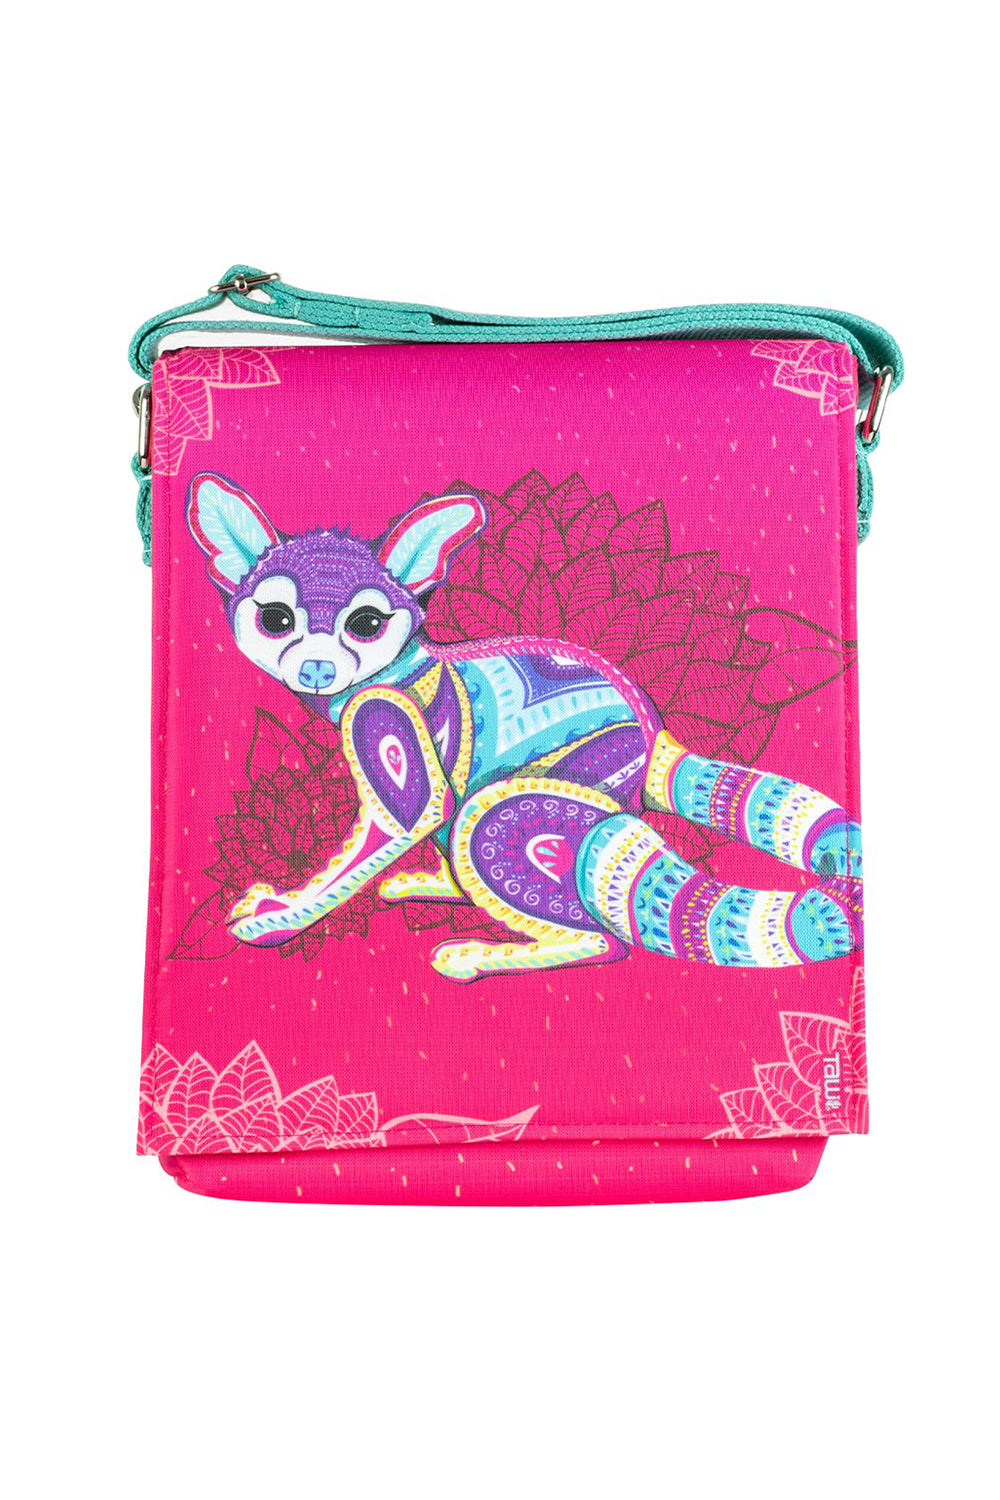 MESSENGER BAG CACOMIZTLE - to Women - ¡Ay Güey! USA